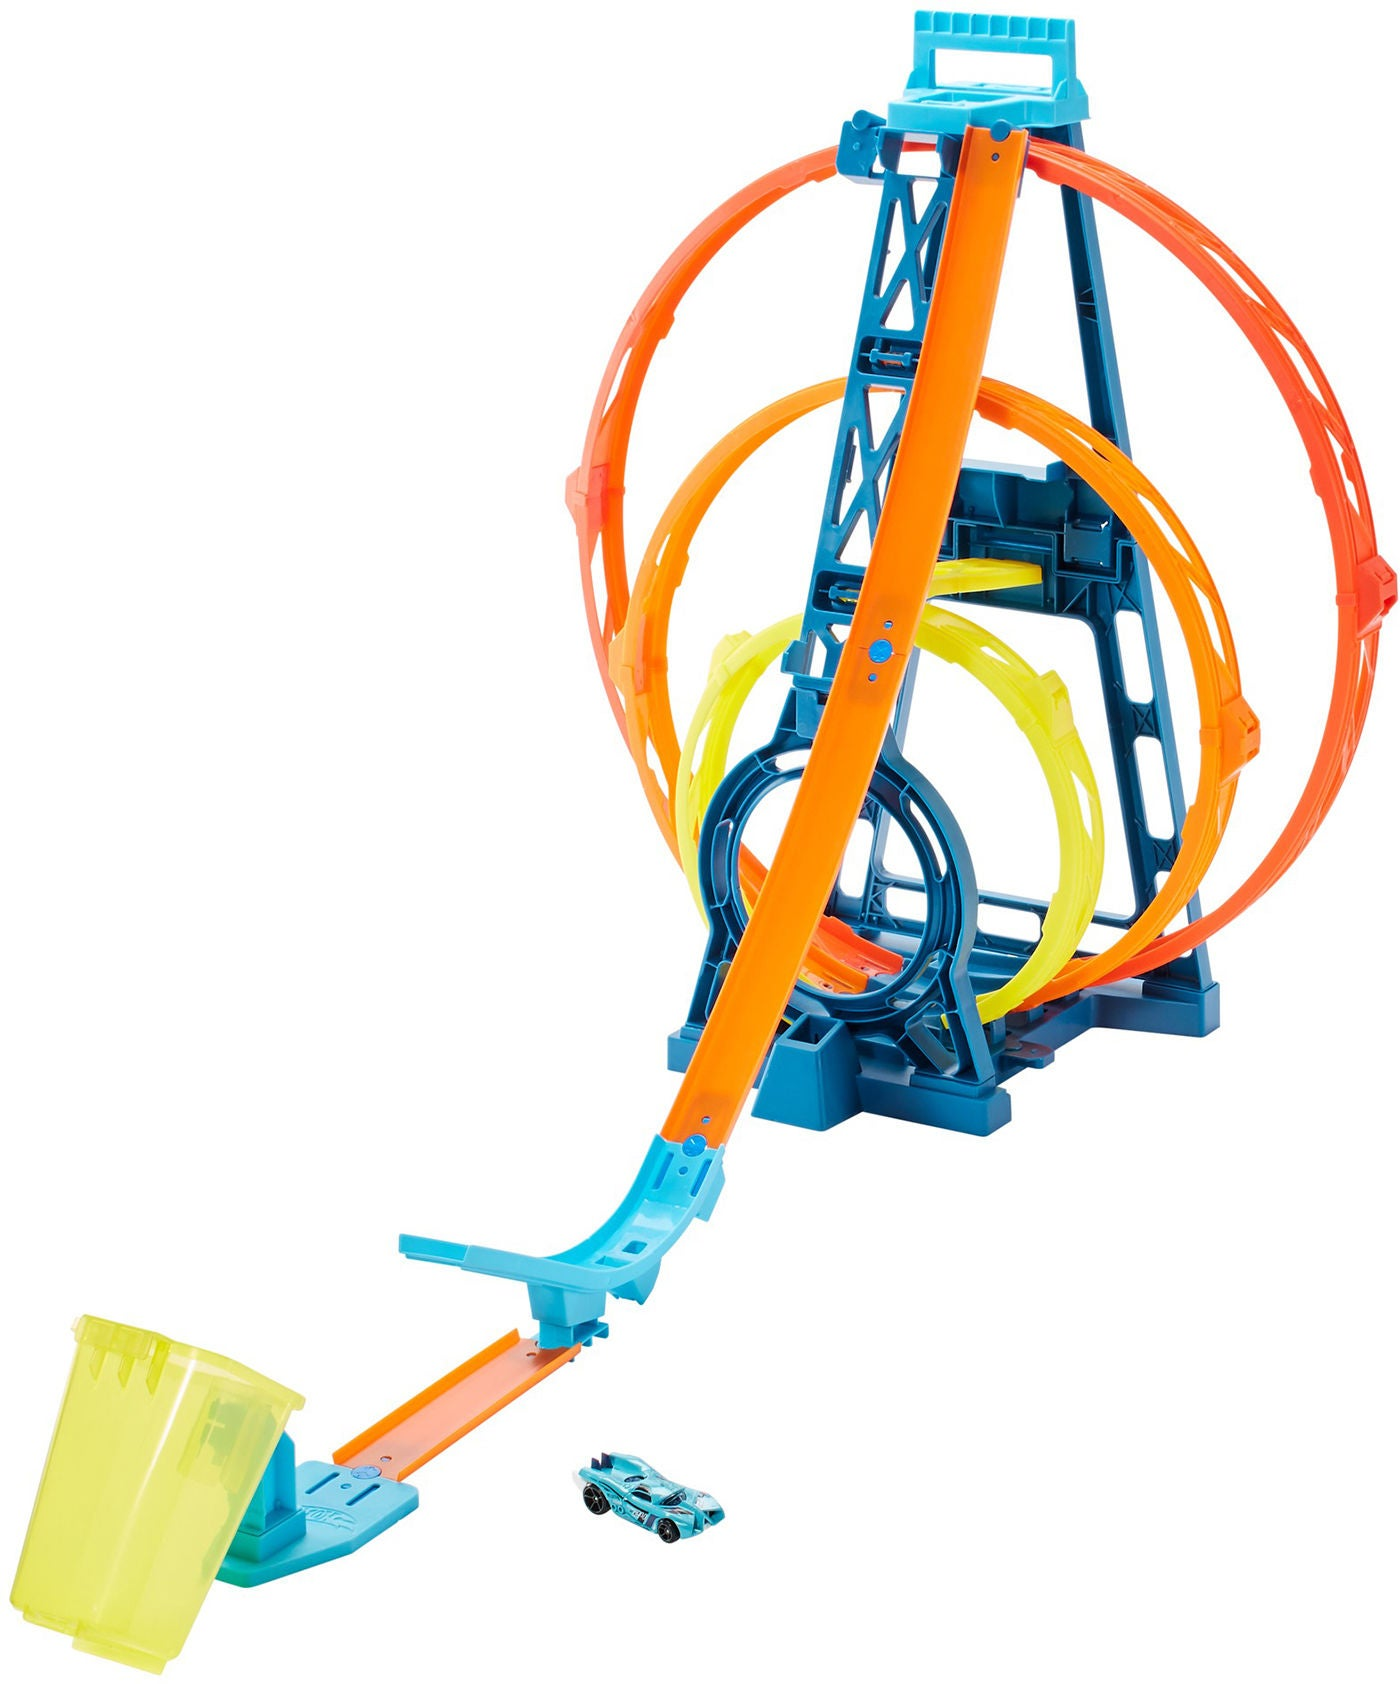 Hot Wheels Track Builder Unlimited Triple Loop Bilbana